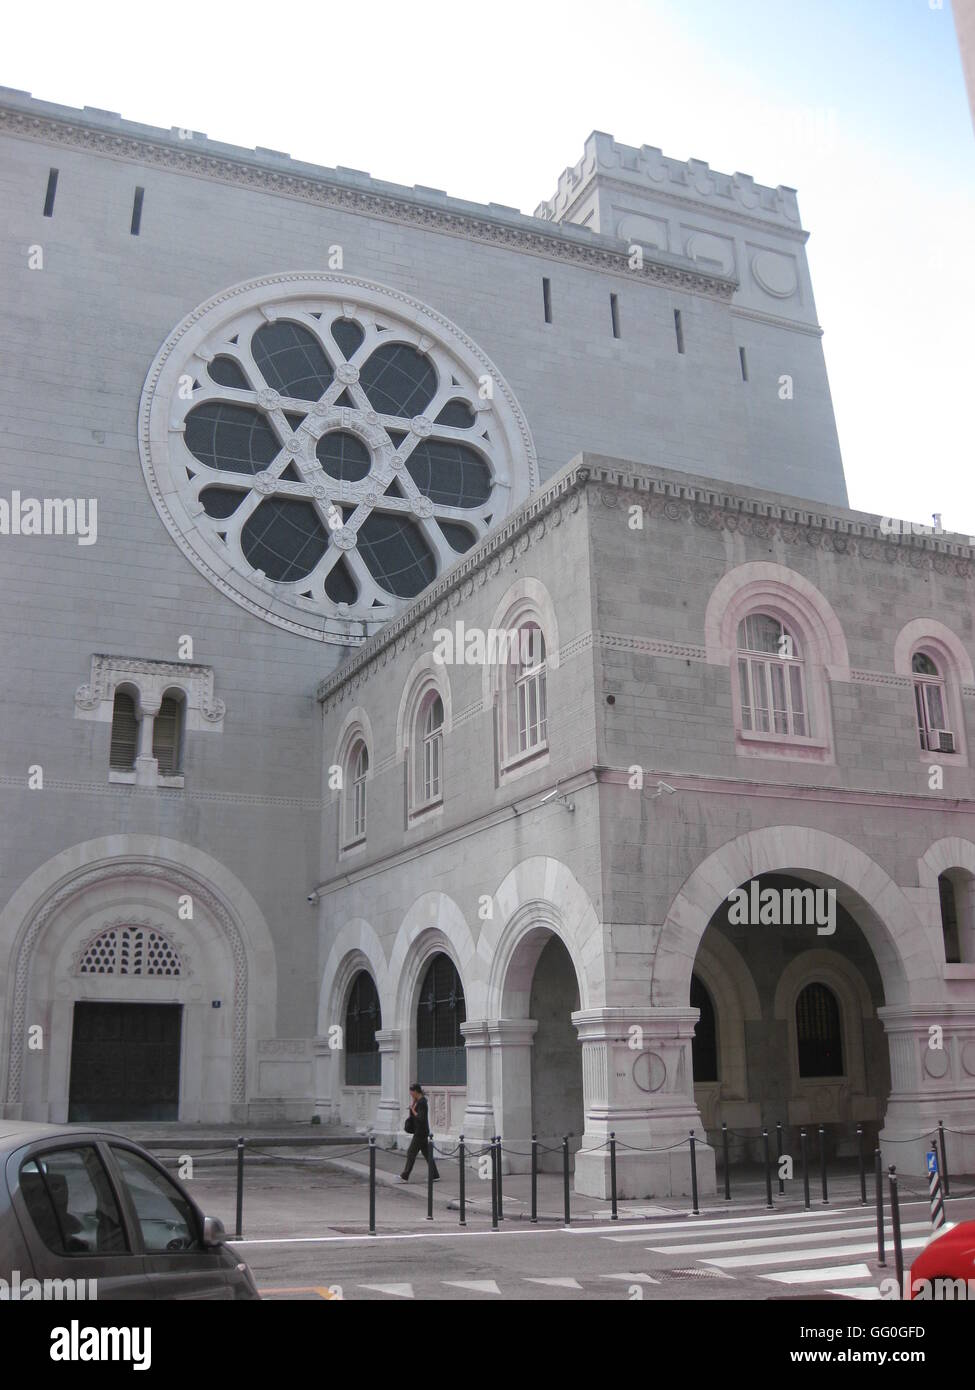 5635.Trieste synagogue - Stock Image